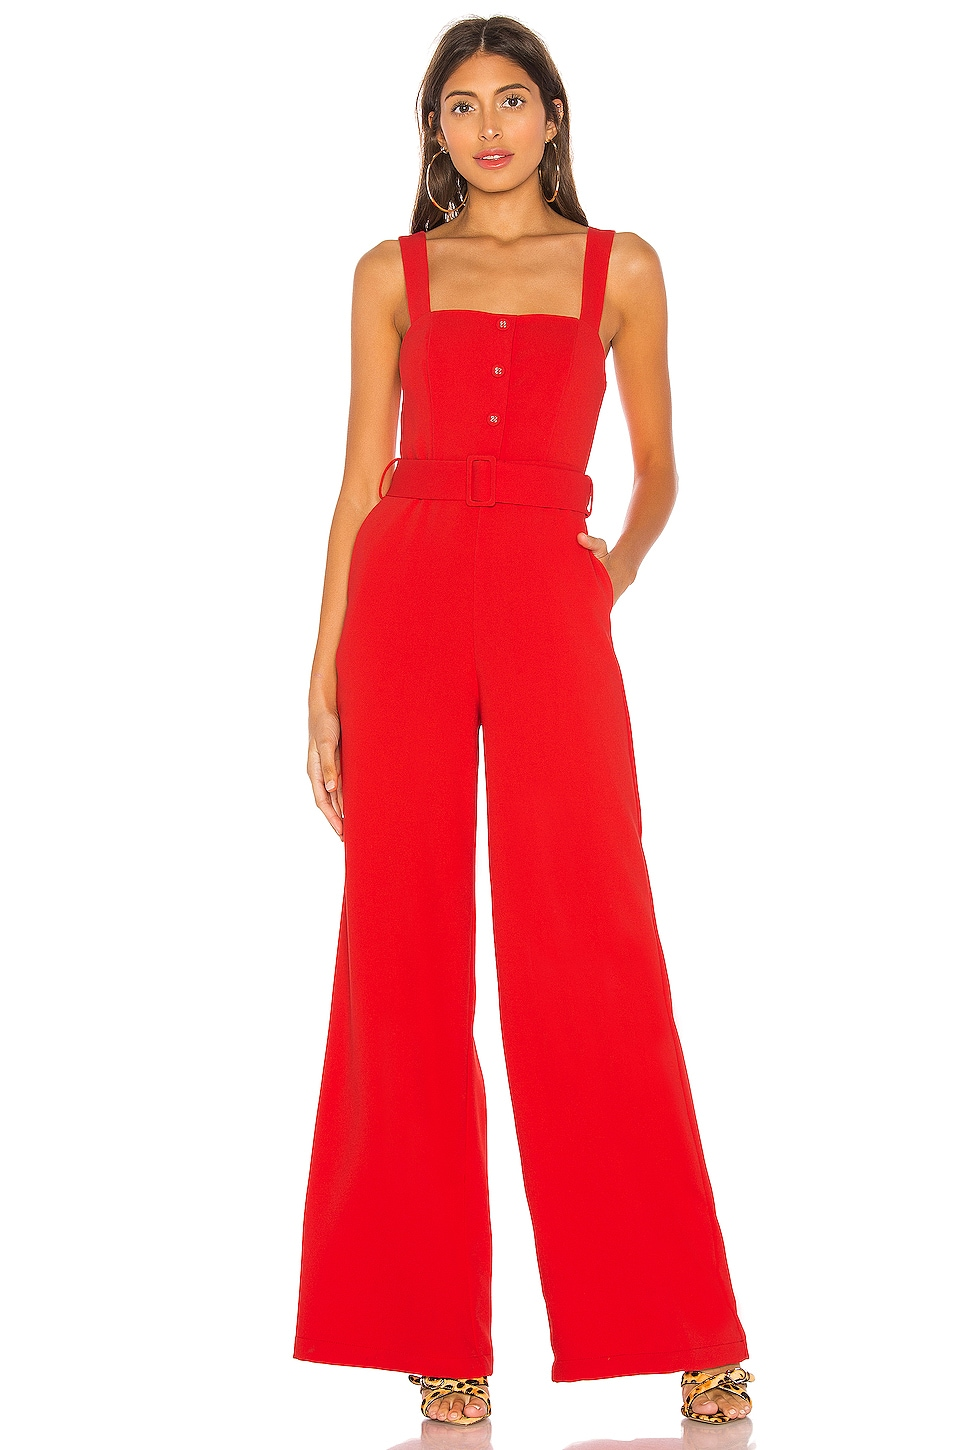 L'Academie Aster Jumpsuit in Red